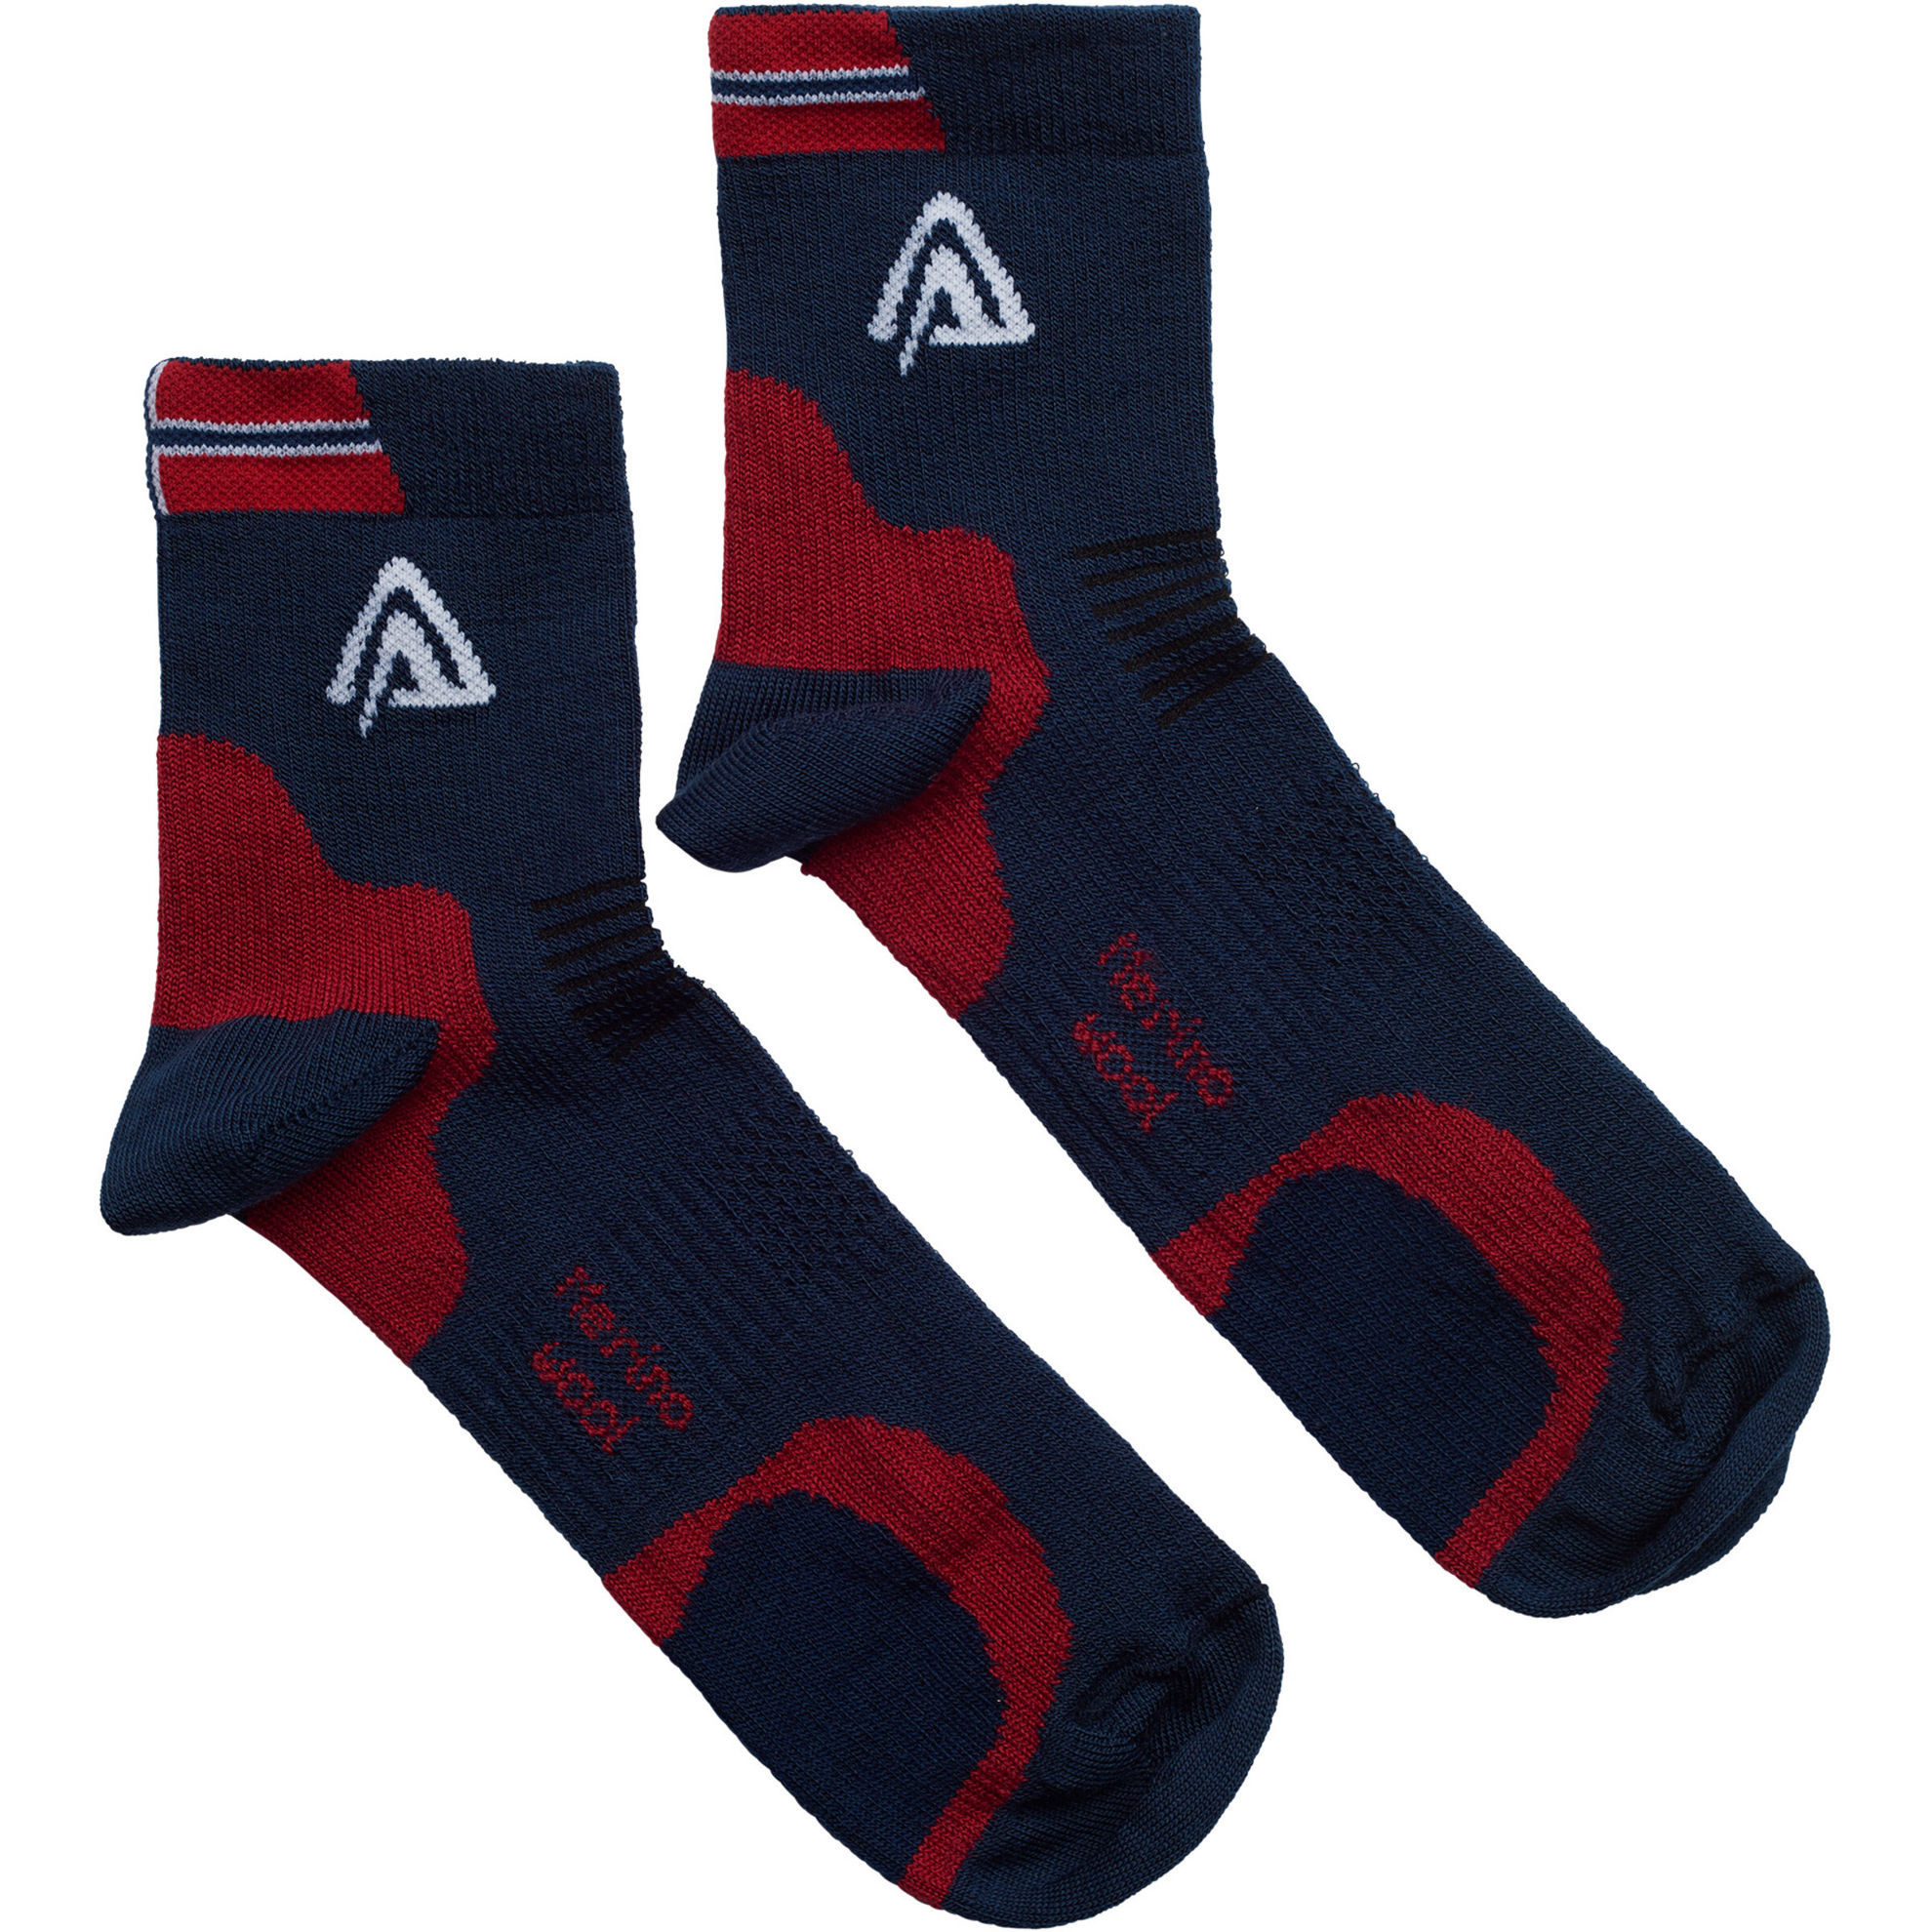 Aclima Running Socks 2 PK i Merinoull - Blue/ Red/ White